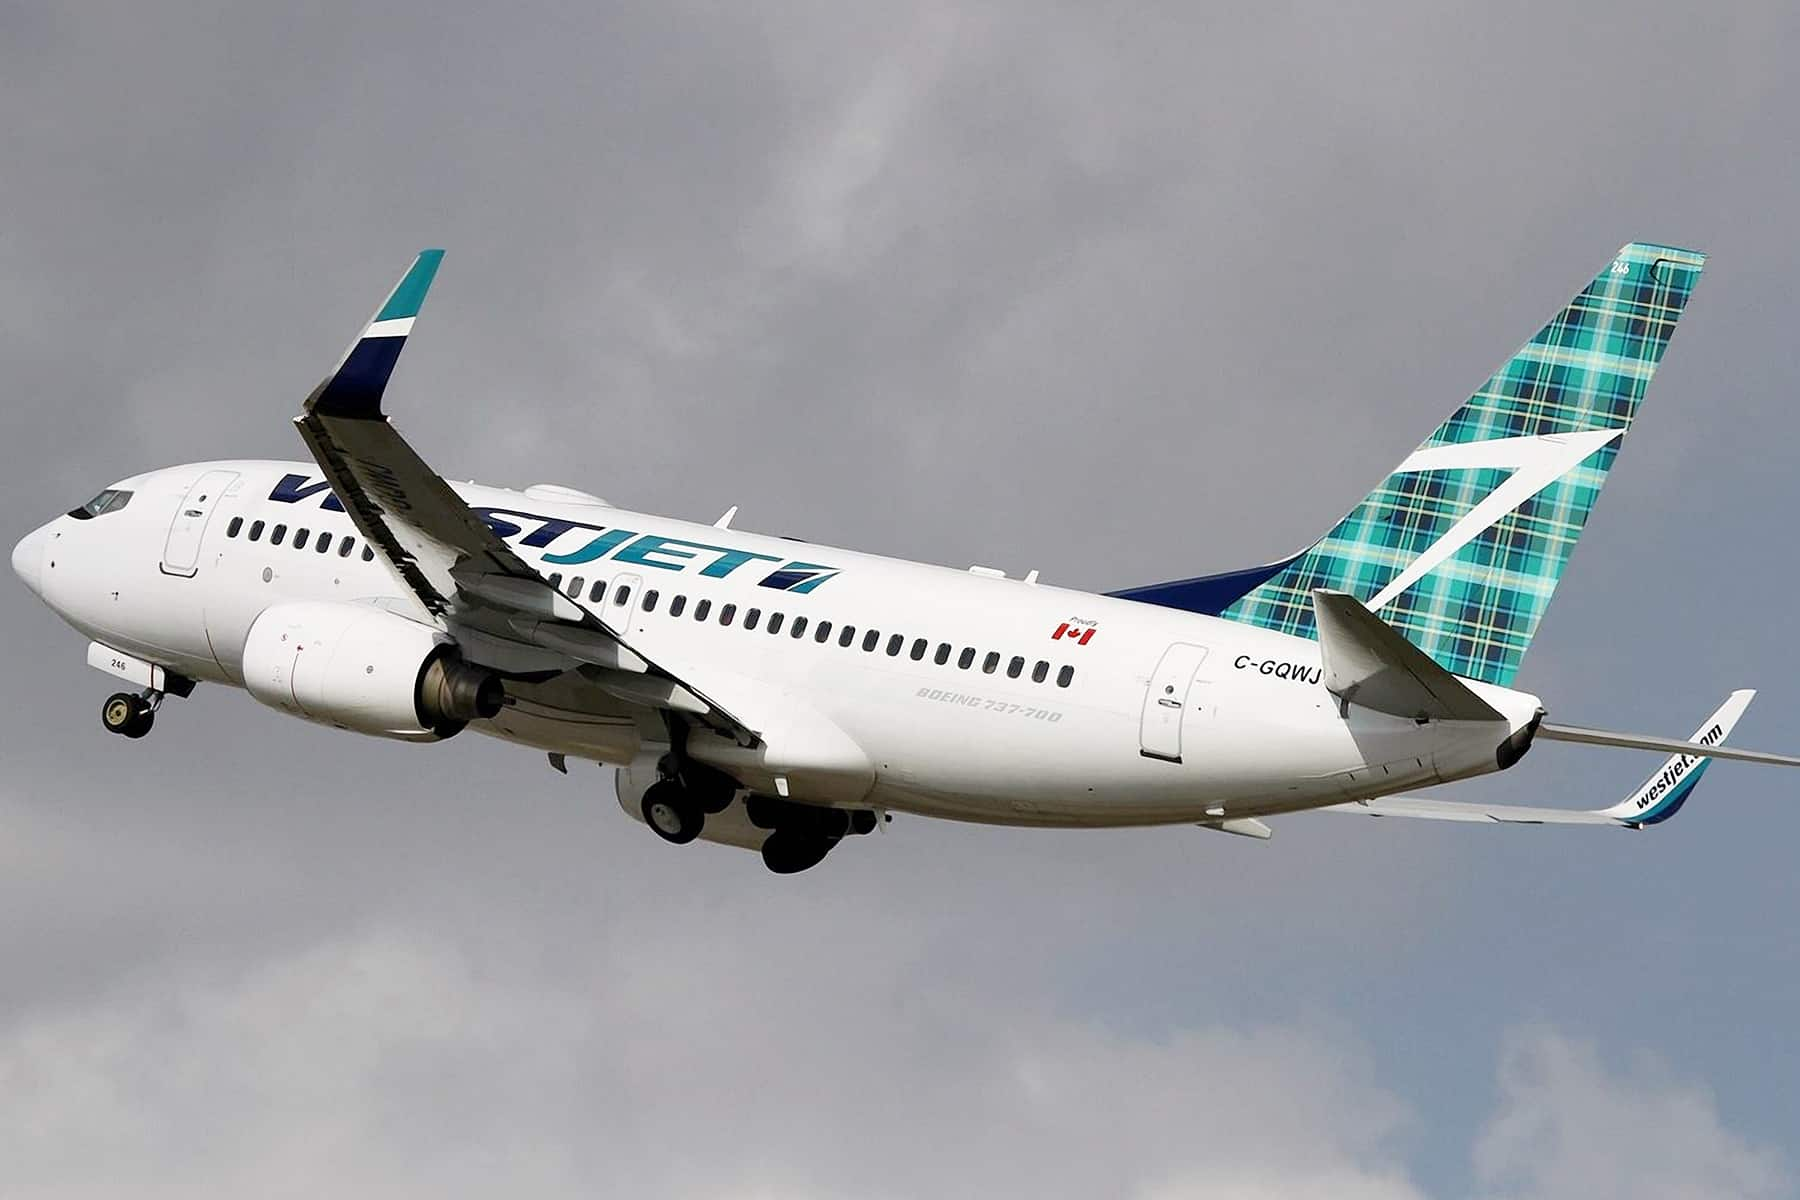 Flights With West Jet Canadian Carrier Westjet To Add Flights To Costa Rica From Calgary